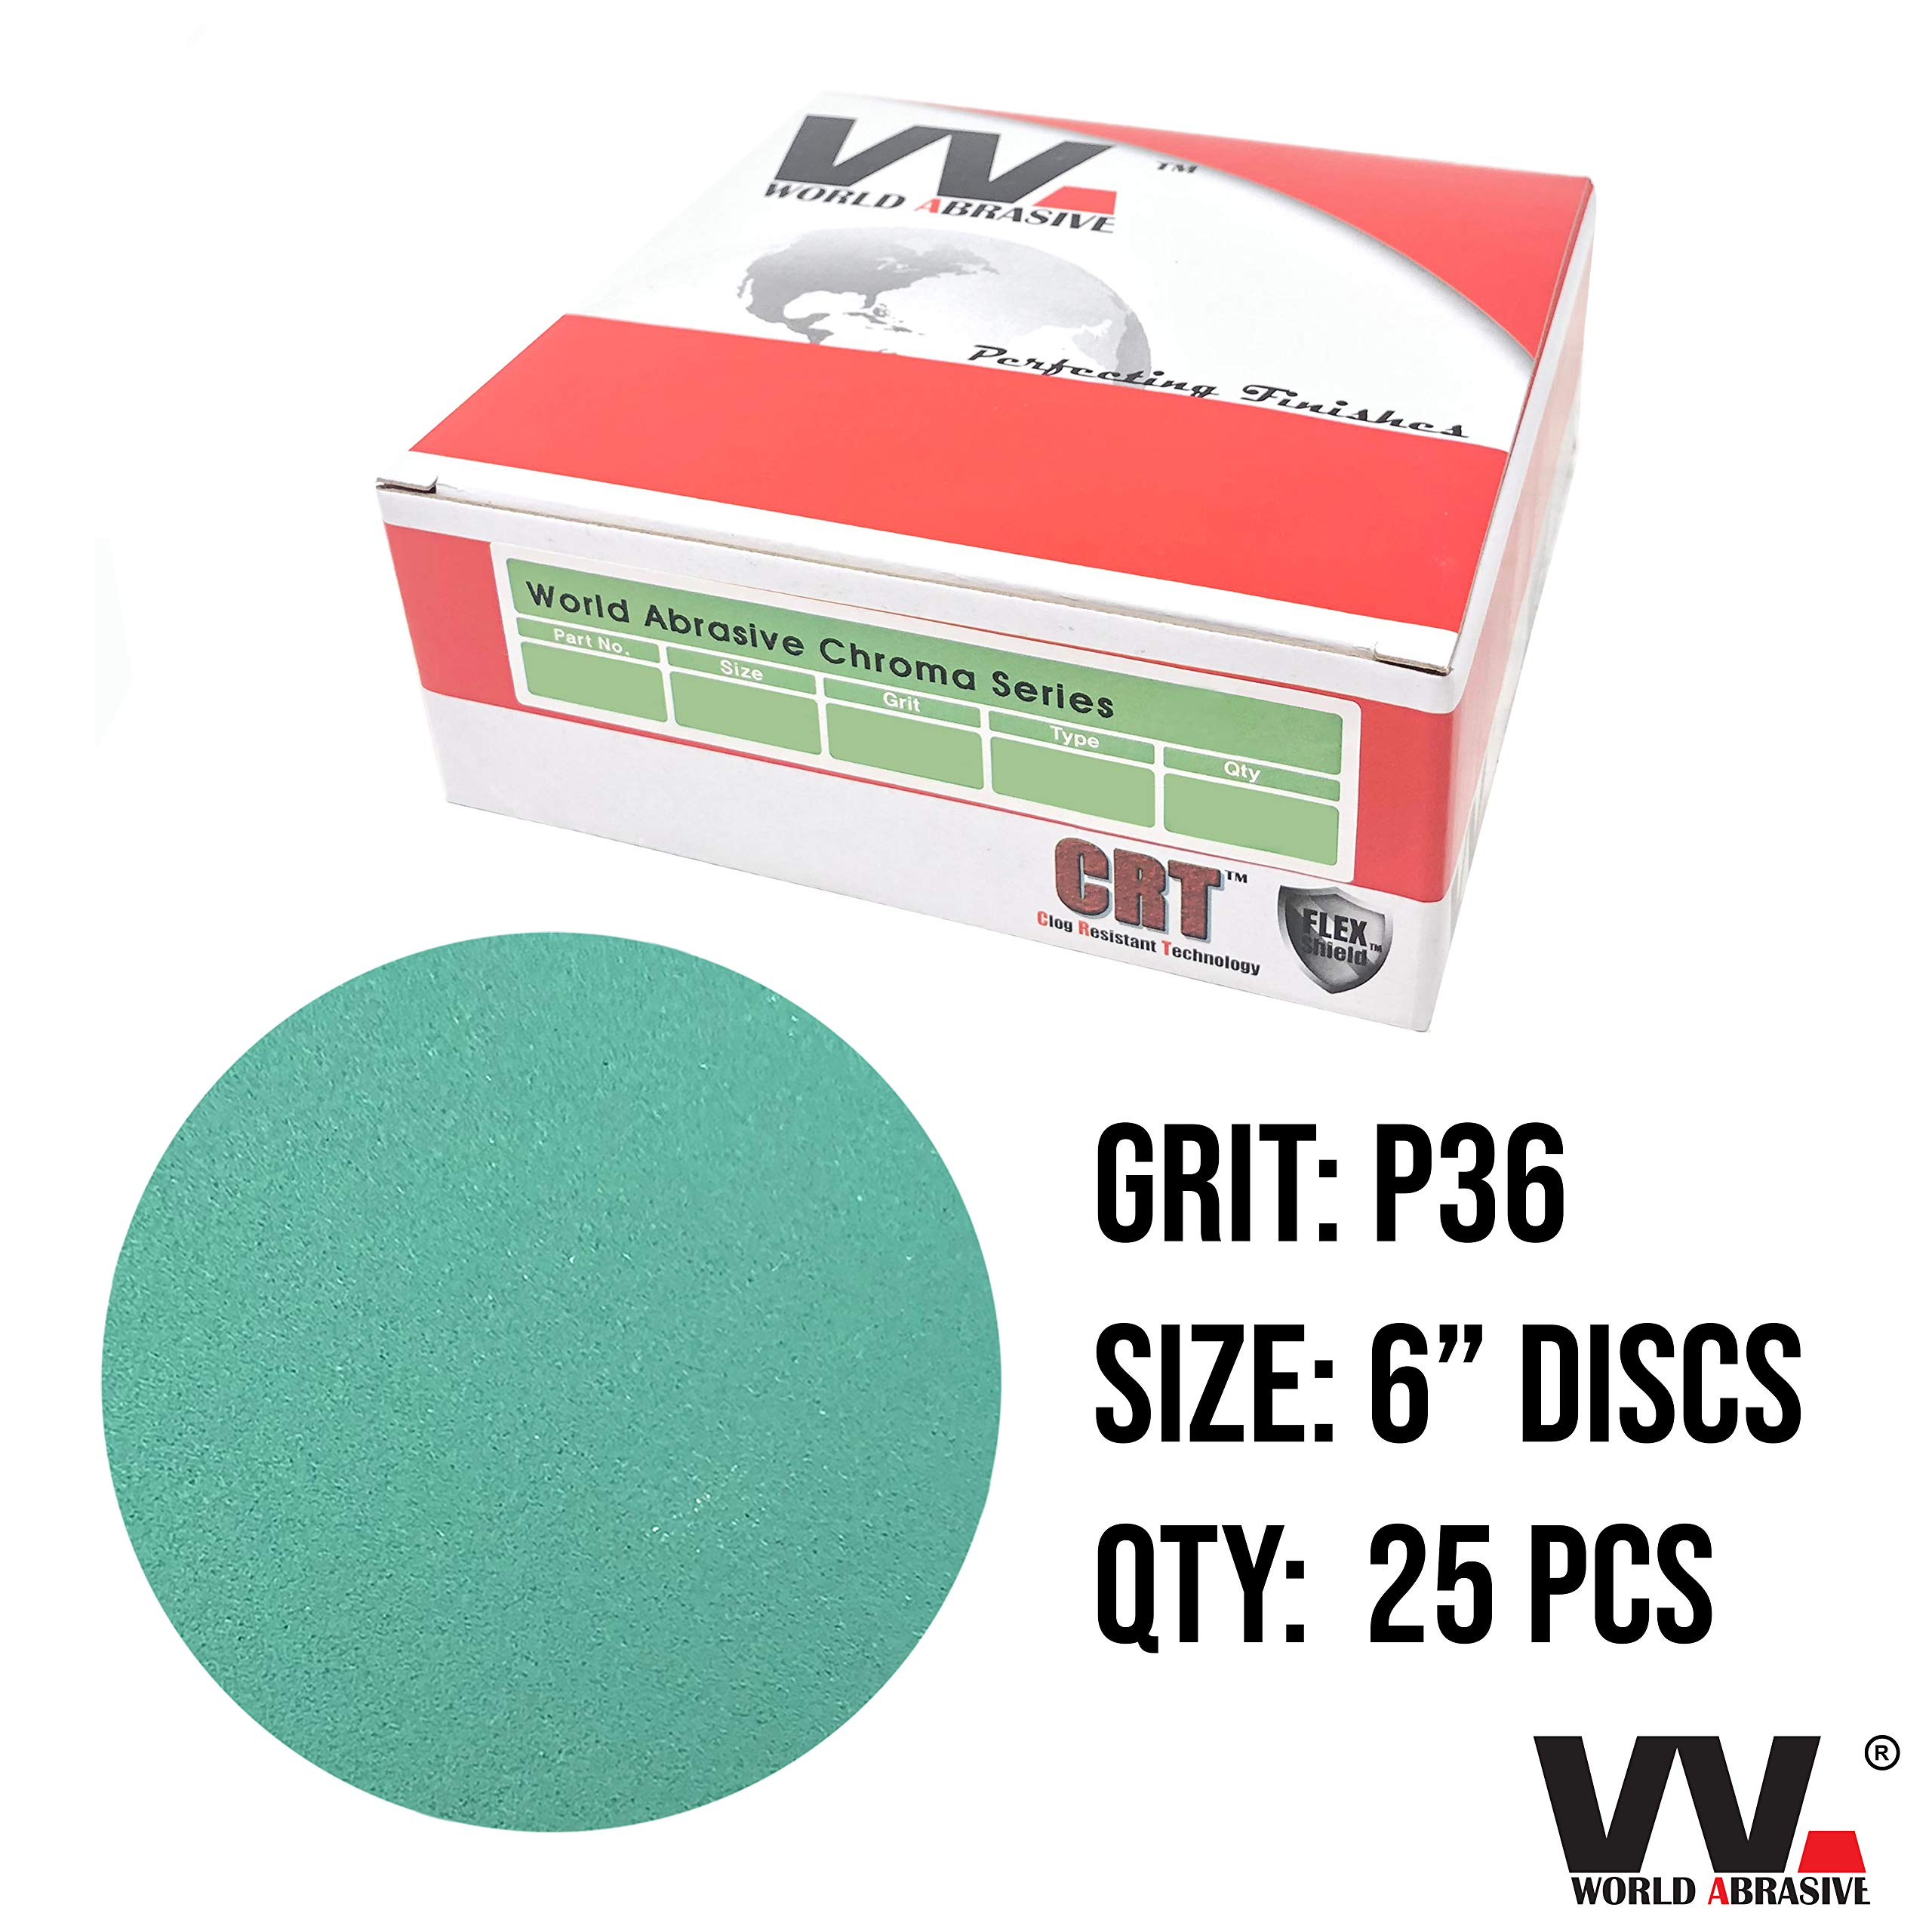 World Abrasive - Premium (Wet/Dry) - 36 Grit 6 inch No Hole Film Hook and Loop Back Sanding Discs for Orbital Sanders - Box of 25 Sandpaper Discs (Automotive, Marine, Aircraft, Wood, Metal) by World Abrasive